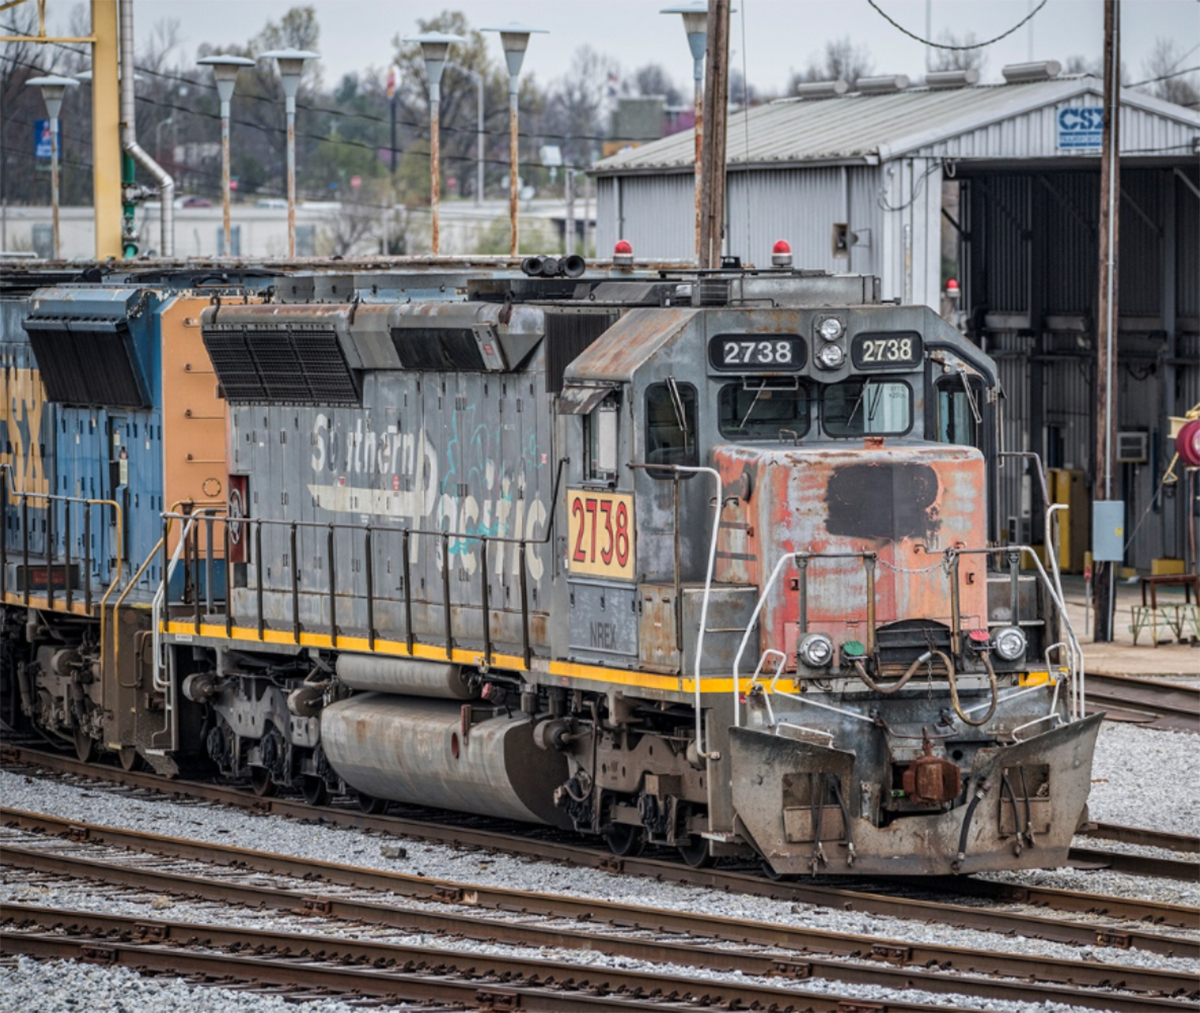 March 30, 2016 - Ex-Southern Pacific, Ex-Union Pacific, NREX 2738 sits at CSX's Atkinson Yard in Madisonville, Ky attached to a string of other power. - Tech Info: 1/640 | f/5.6-6 | ISO 1000/1800 | Lens: Sigma 150-600 @ 280-440mm on a Nikon D800 shot and processed in RAW.  Photo by Jim Pearson